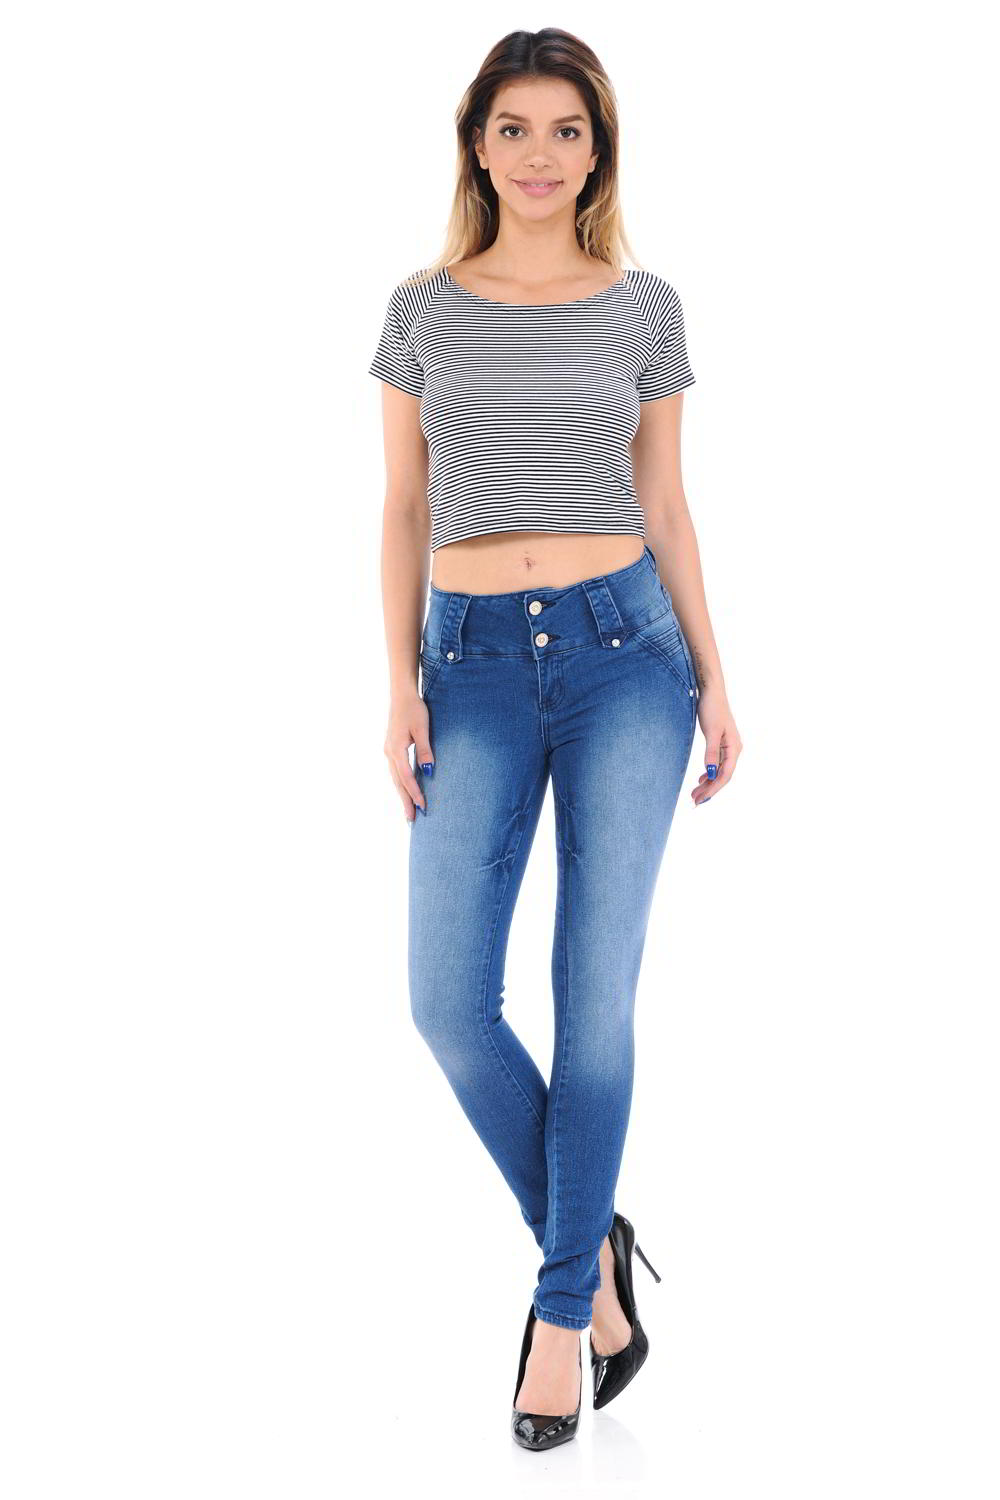 M.Michel Jeans Colombian, Push Up - 6F112